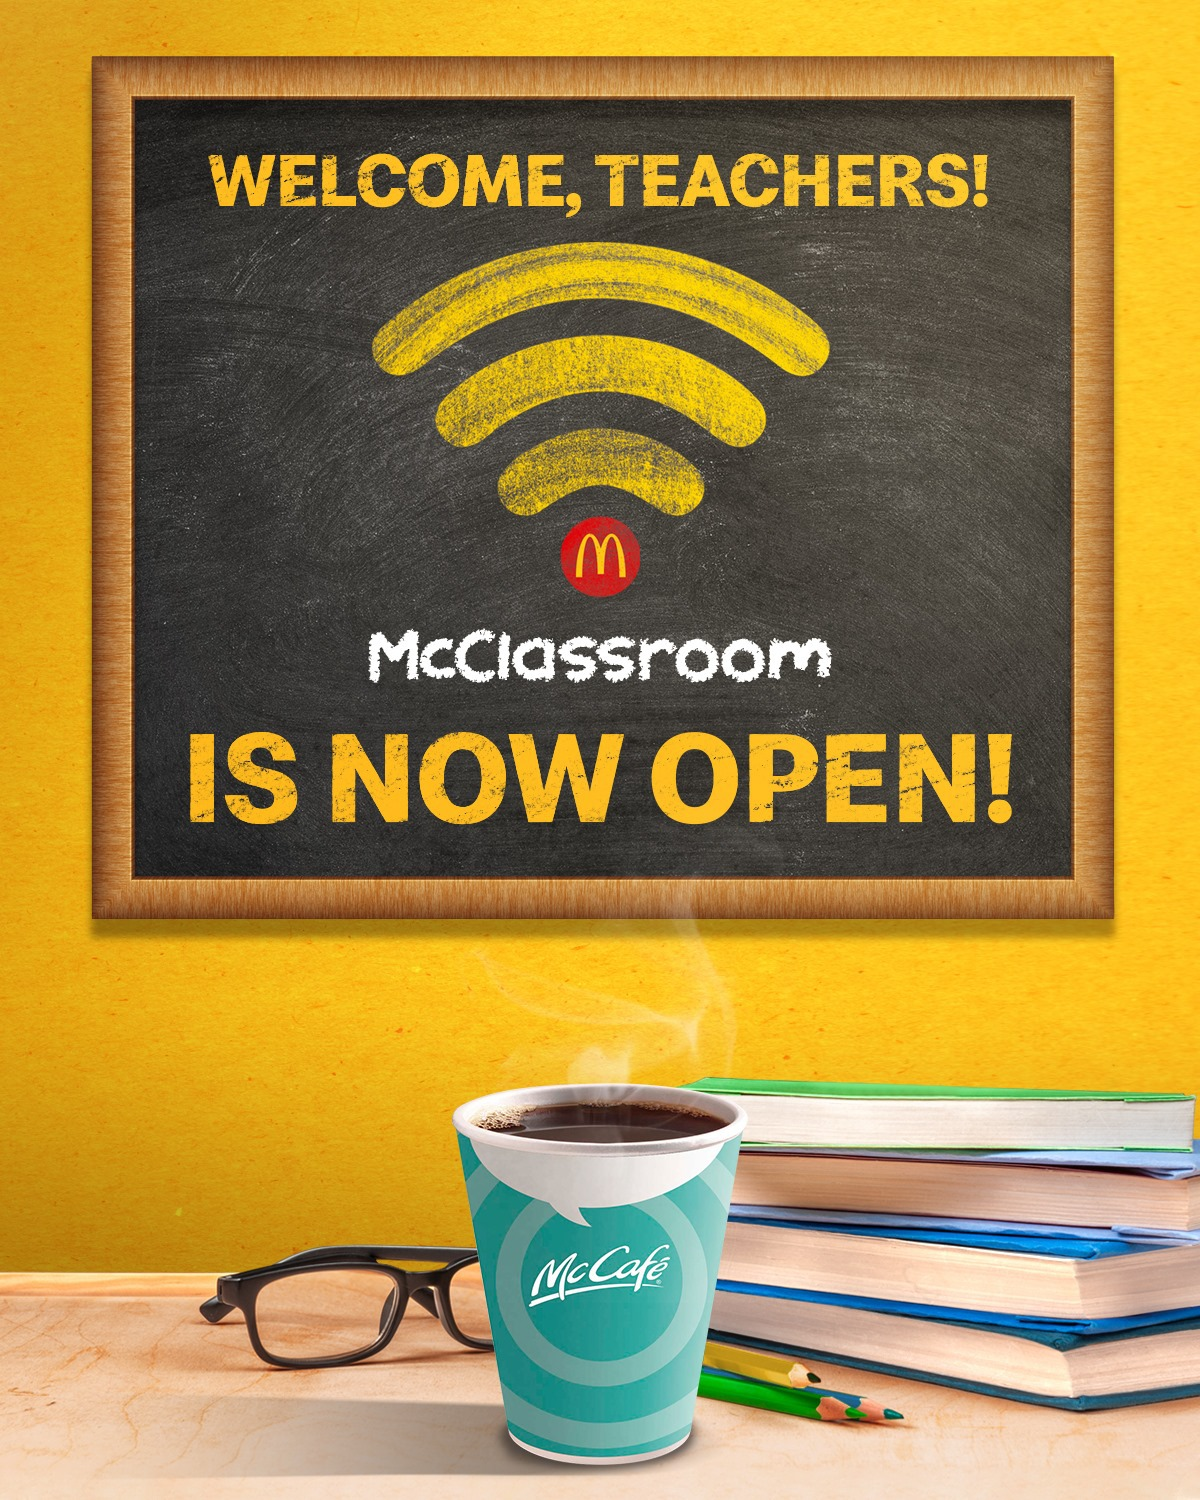 McDonald's Partyrooms to classrooms